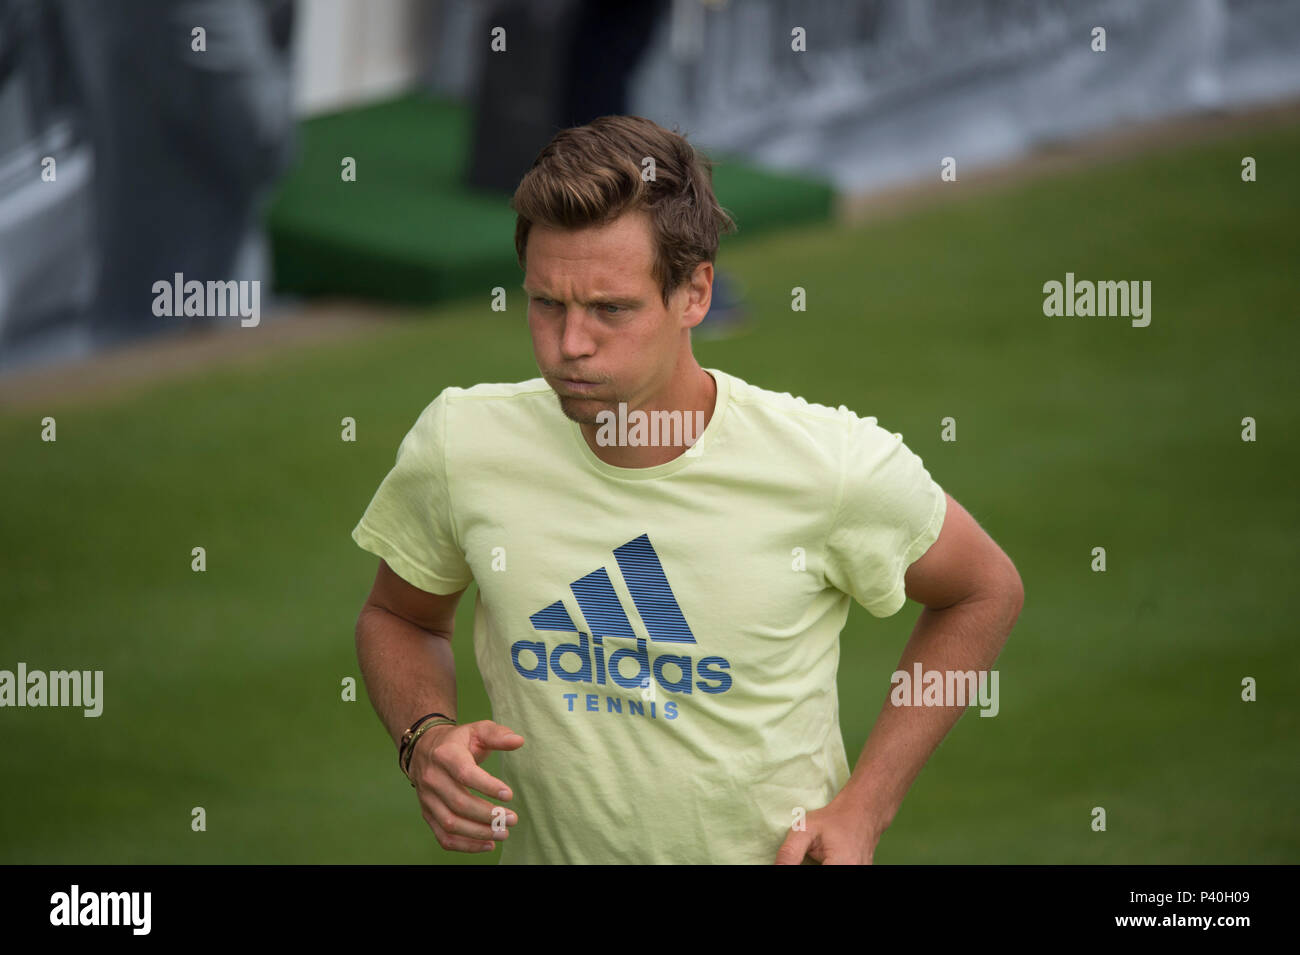 Alamy On amp; Berdych Court Tomás Images Photos WYqc4Wwng5